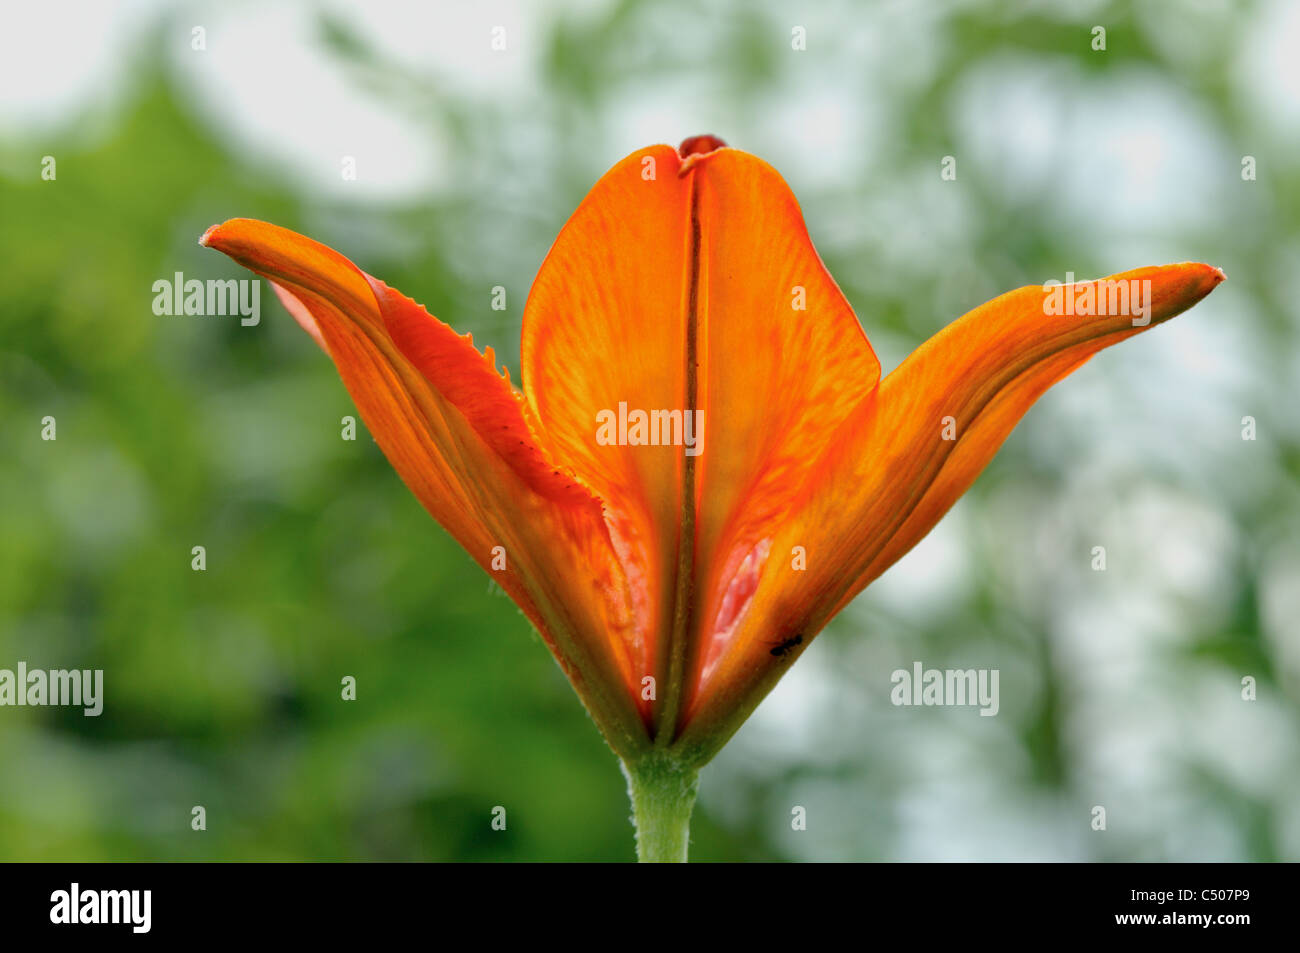 Flower of red lily with a soft background. - Stock Image